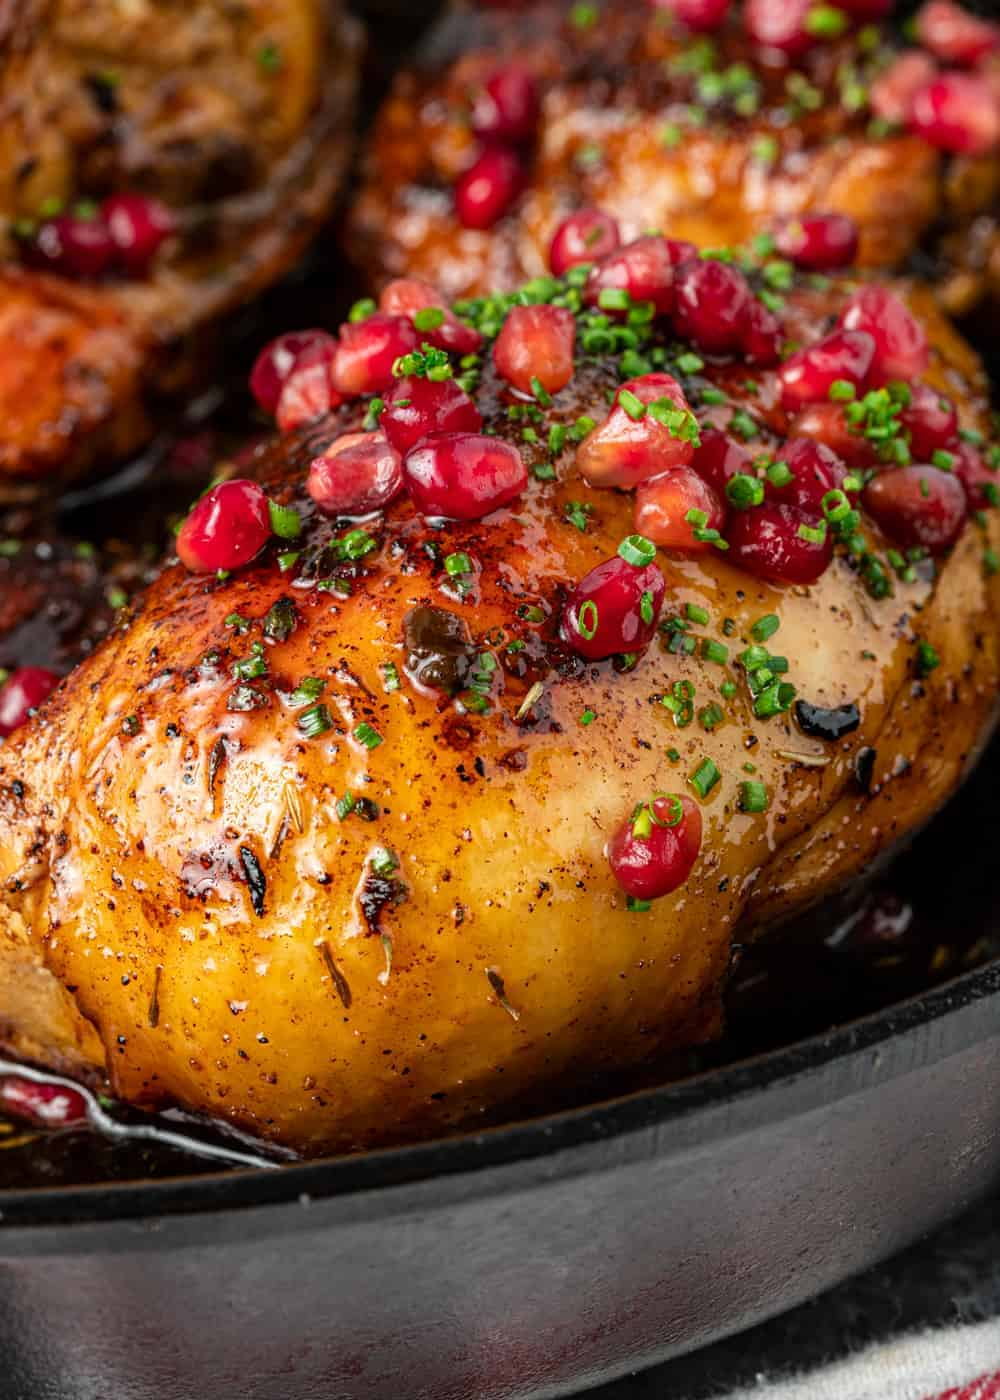 Jordanian pan-roasted chicken breast topped with pomegranate molasses sauce